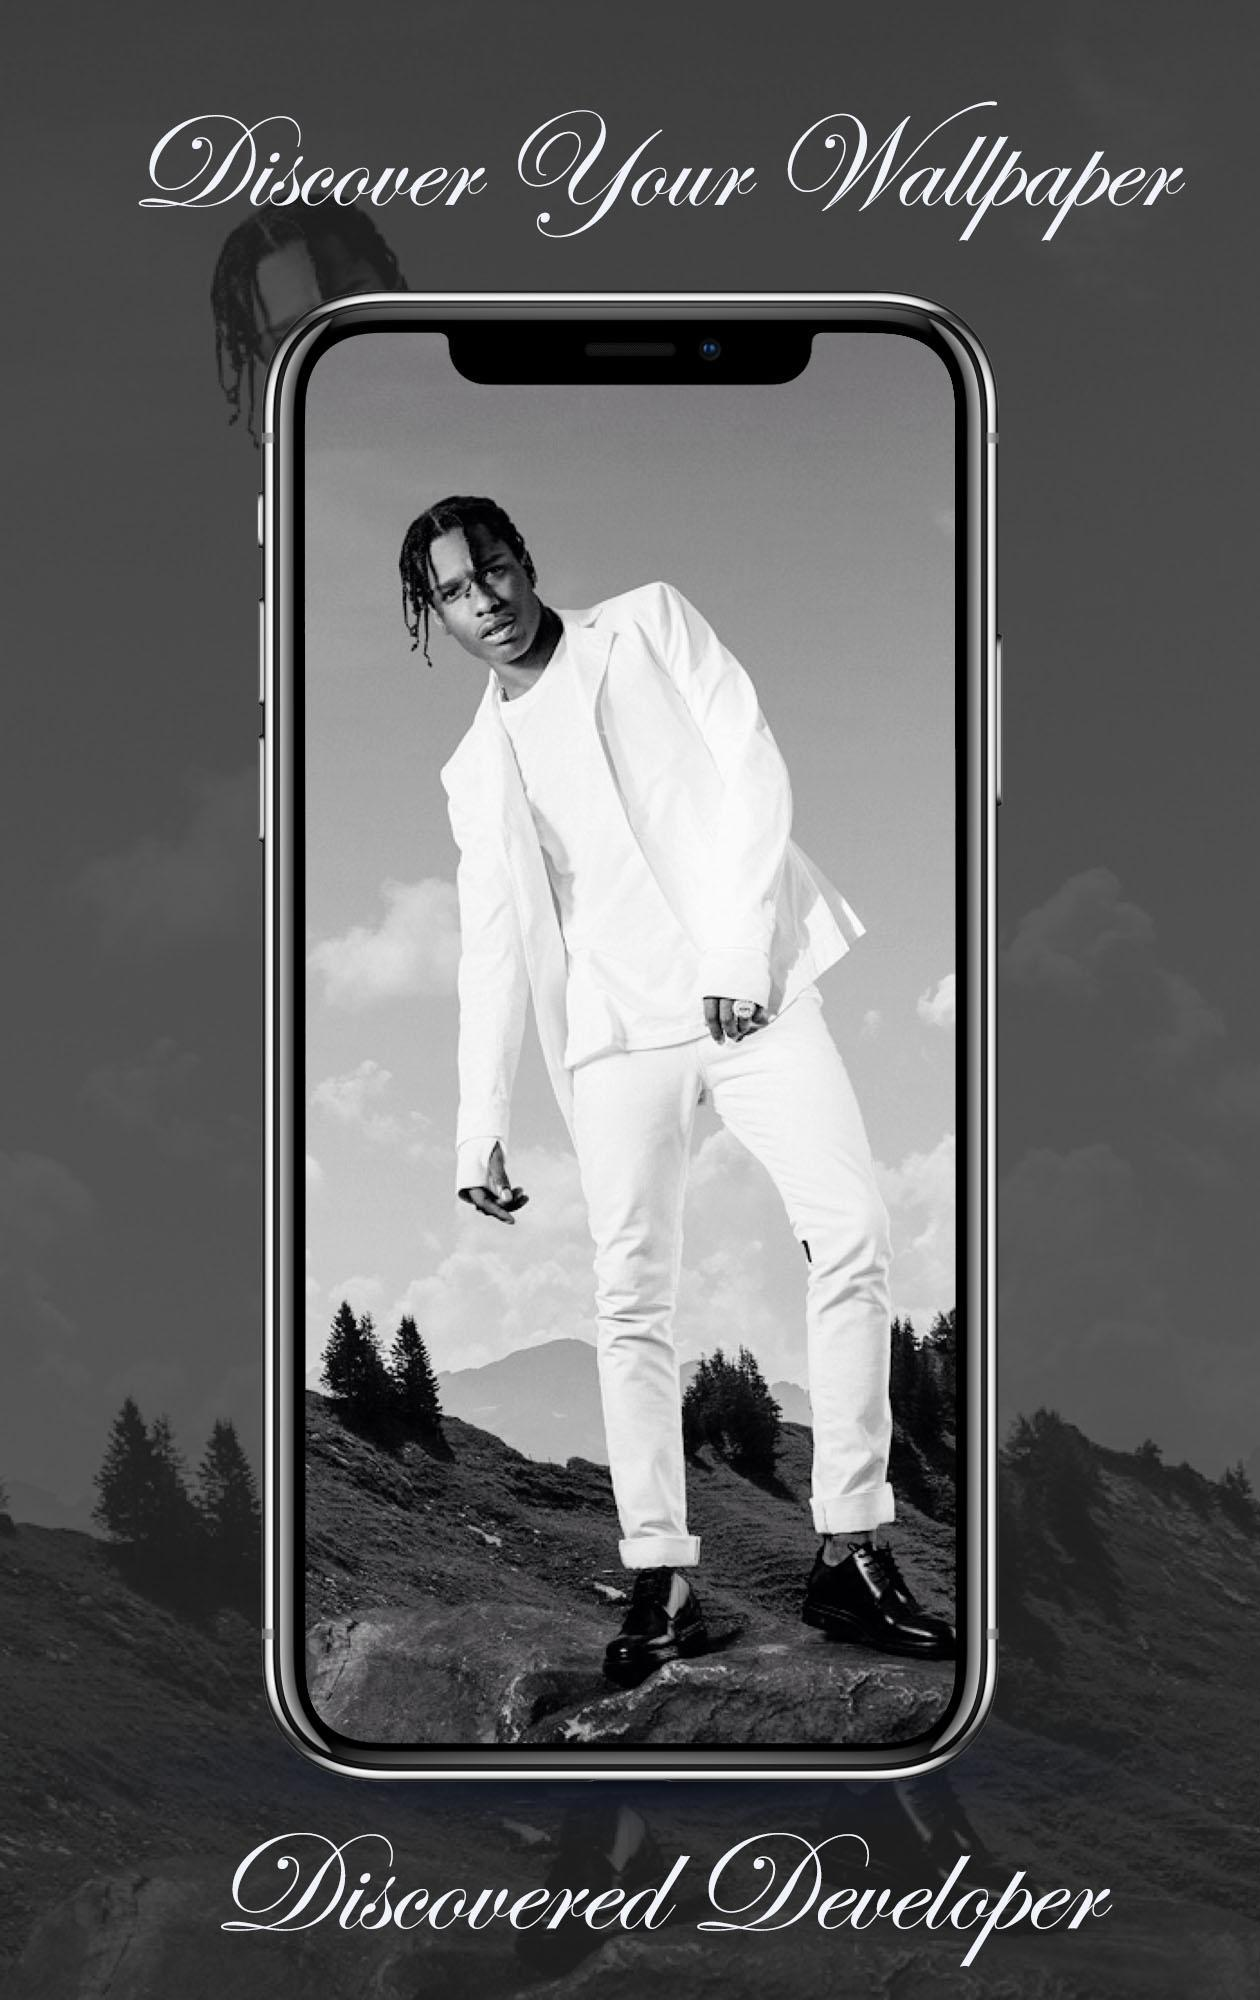 Asap Rocky Wallpaper Hd 4k For Android Apk Download